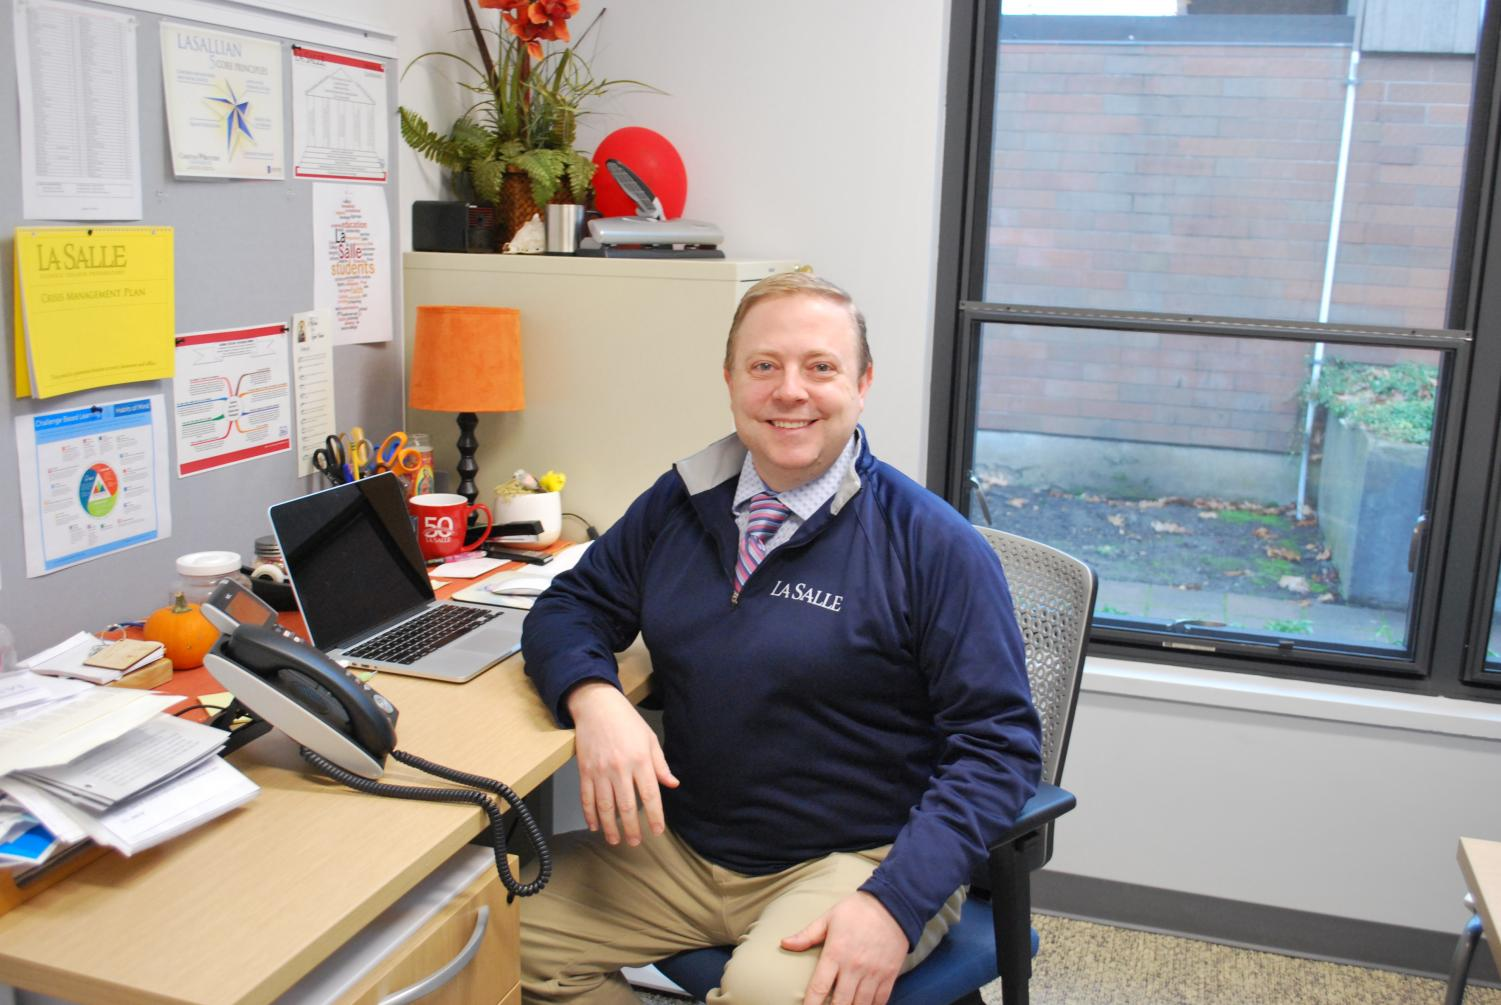 Taking on the role of both principal and president this year, Mr. Kuffner is seen here in his office.